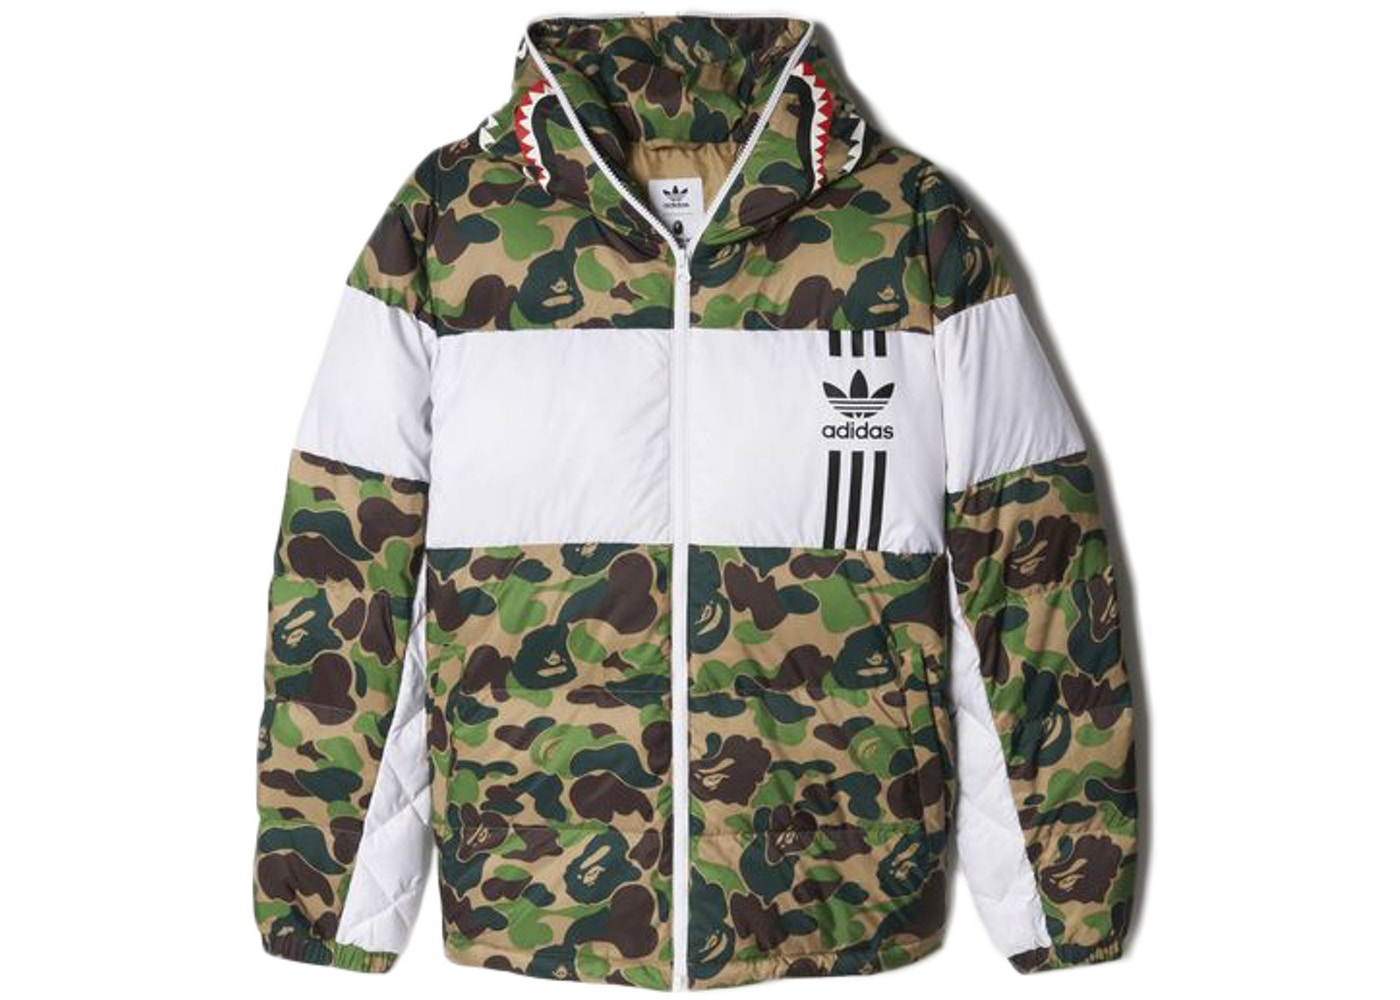 253729c6283c Bape Jackets - Buy   Sell Streetwear